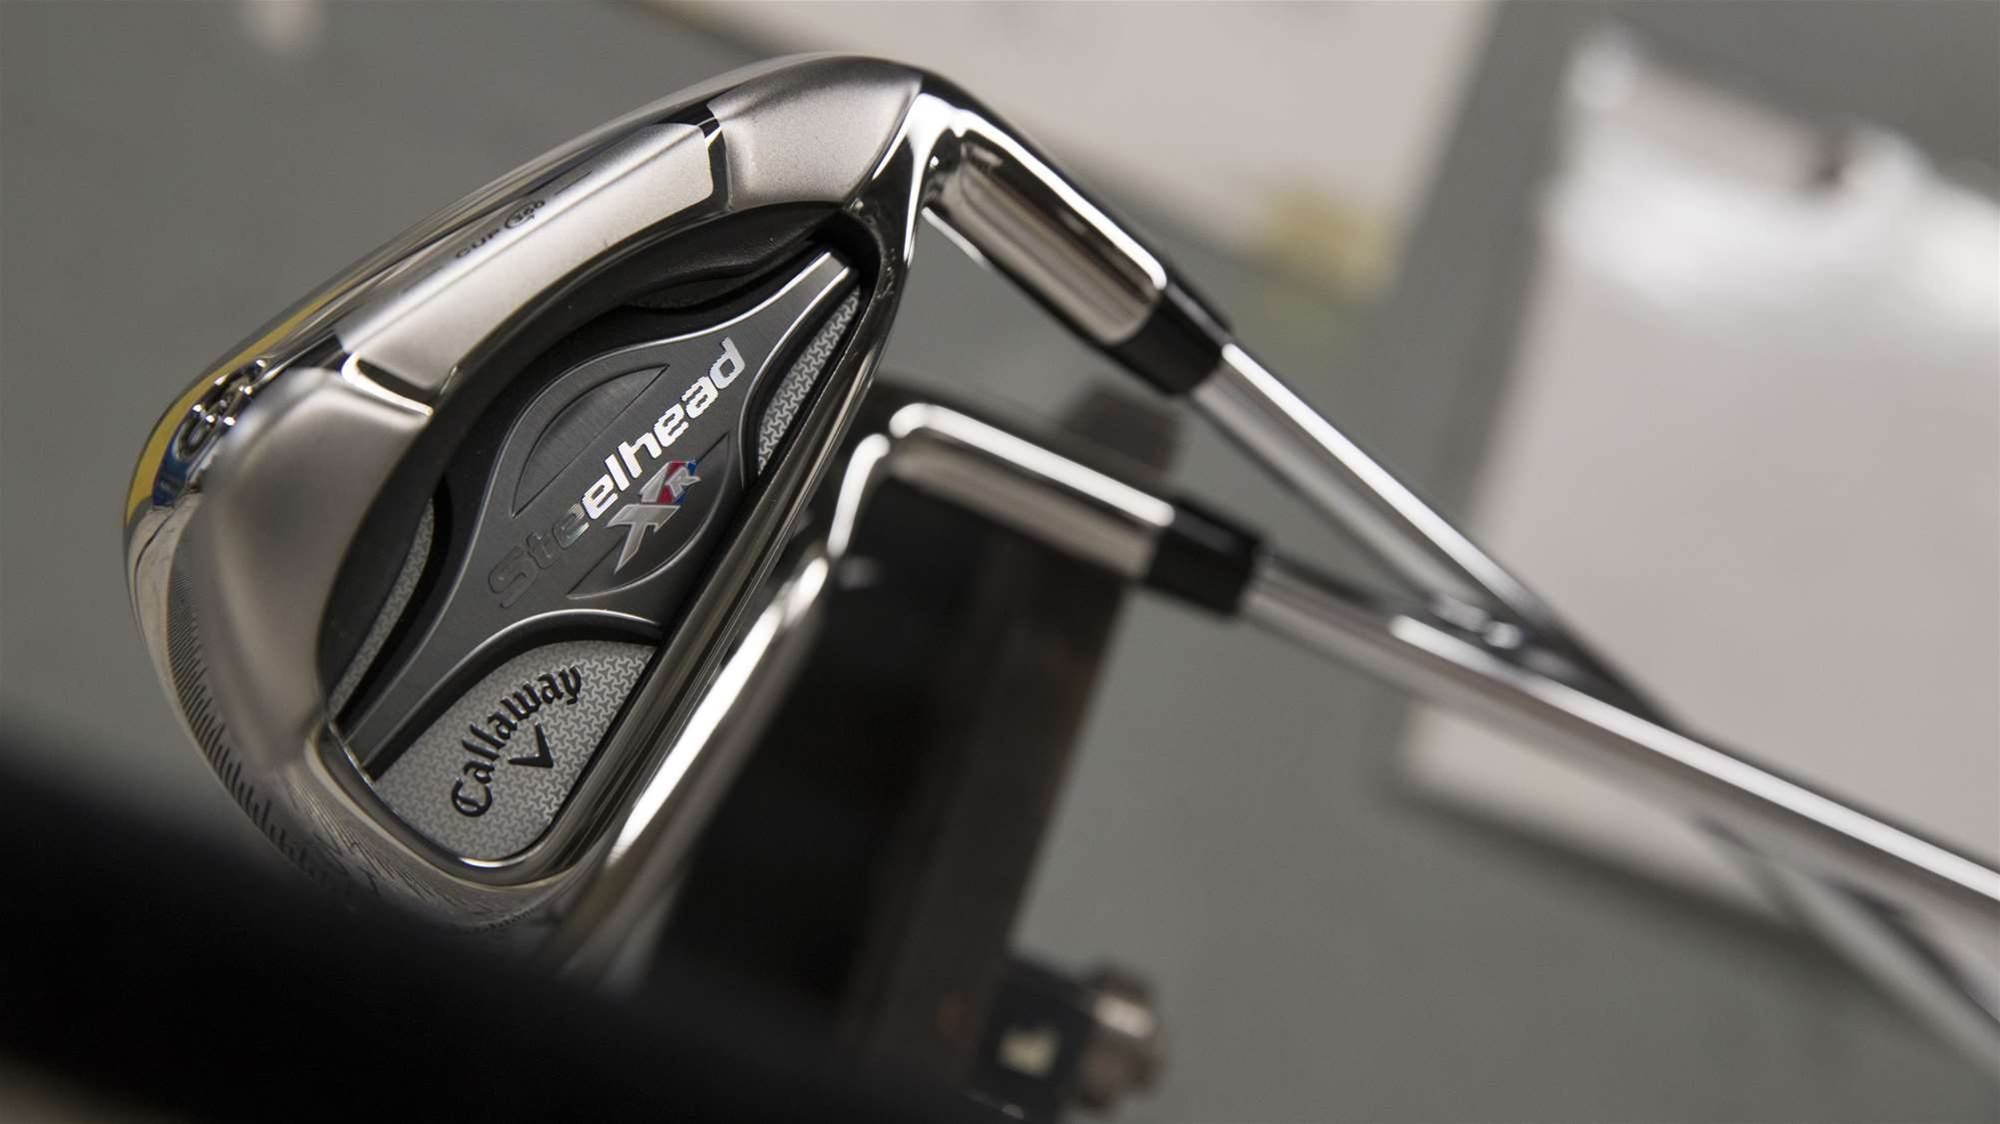 New Gear: Callaway Steelhead XR irons